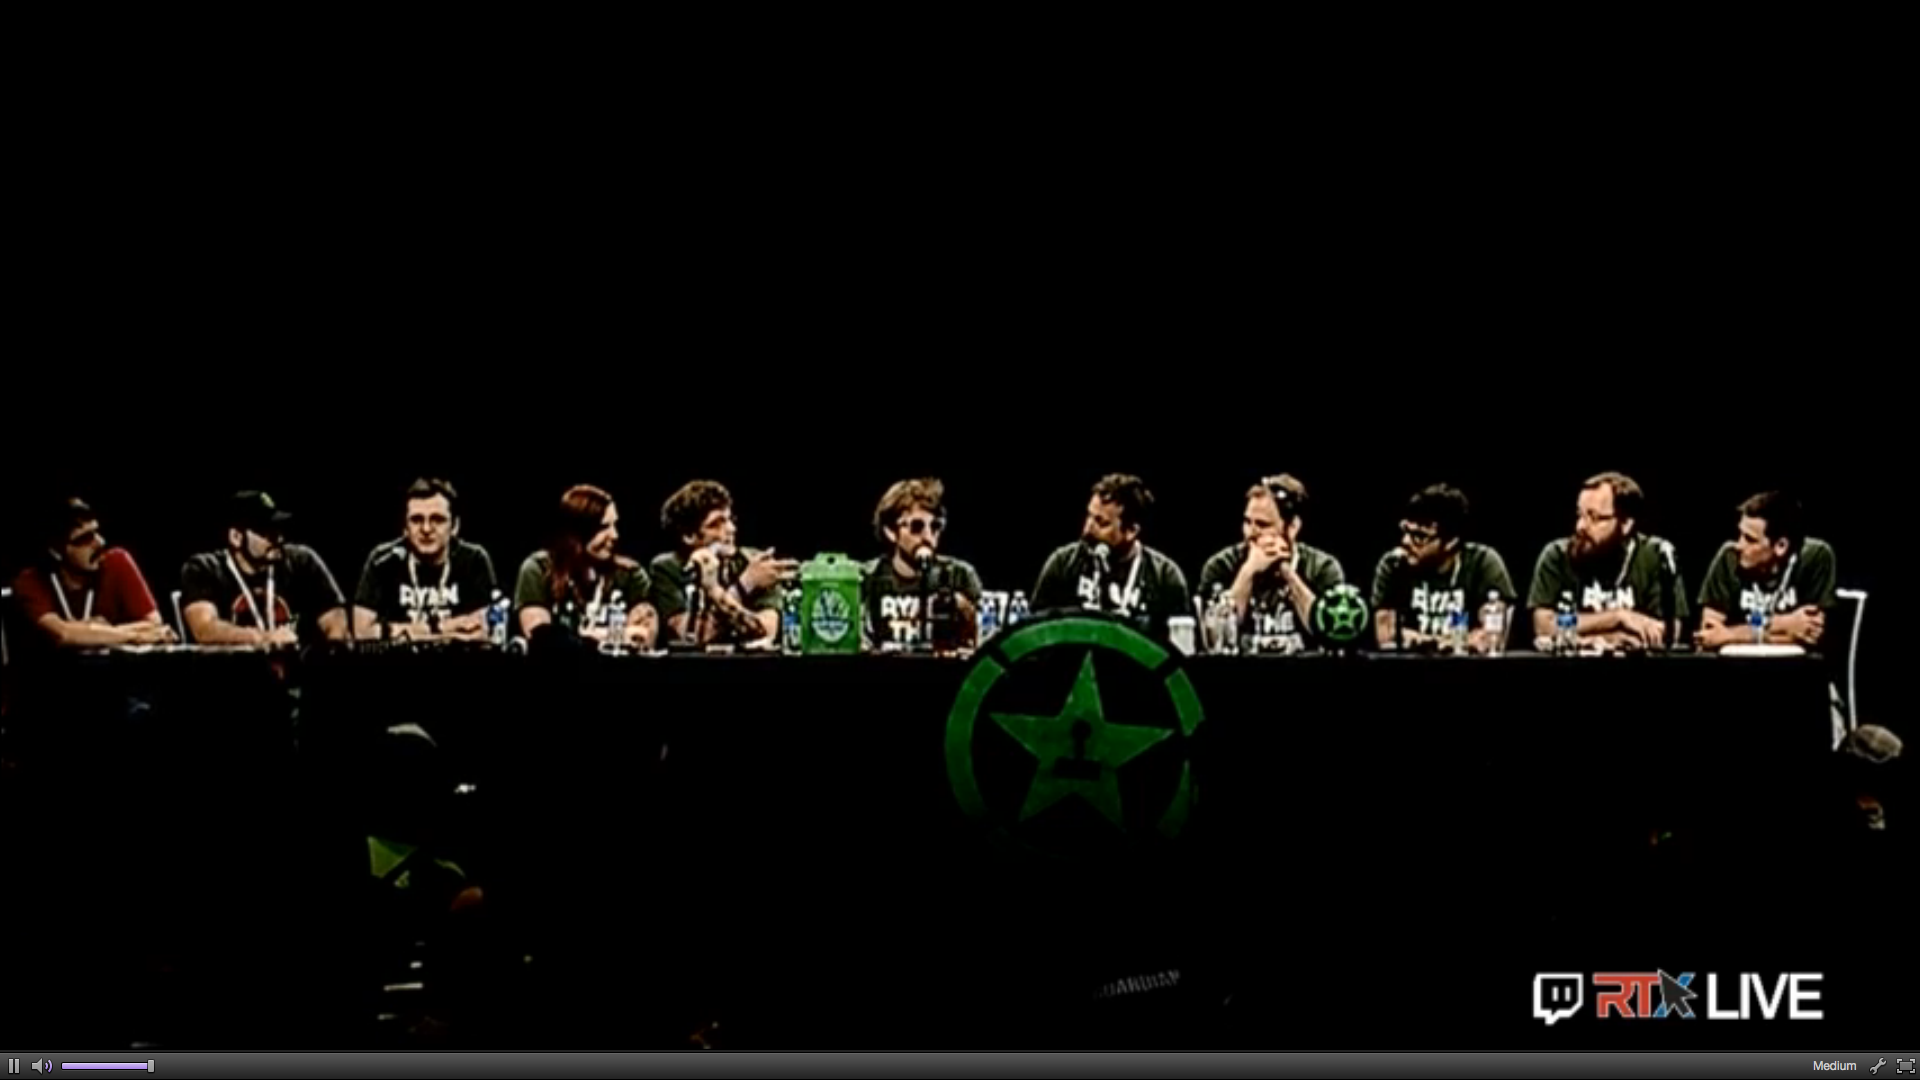 Achievement Hunter Wallpaper Hd Images & Pictures - Becuo